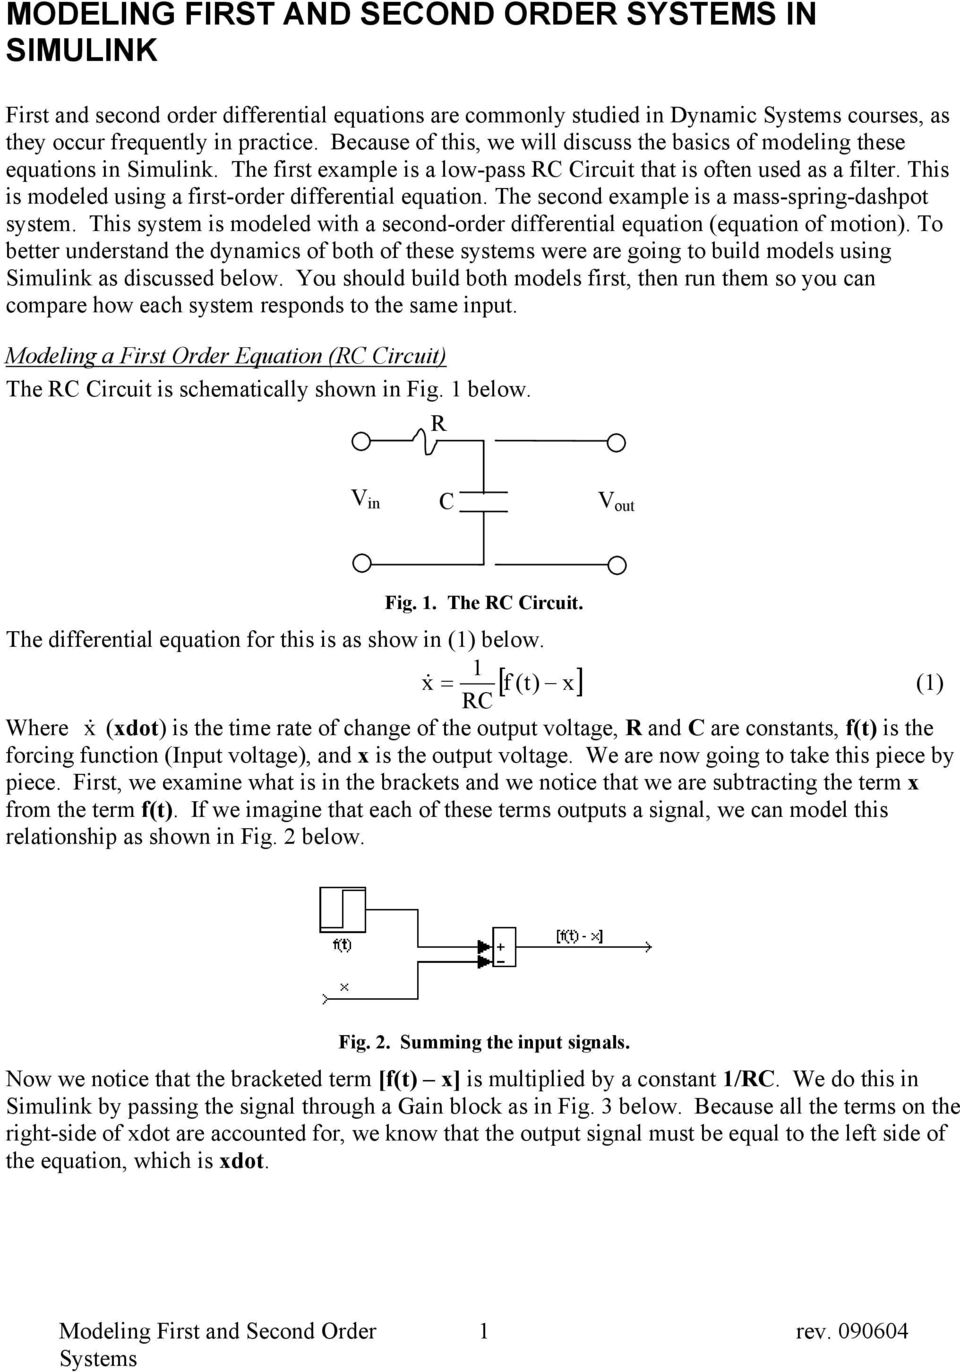 MODELING FIRST AND SECOND ORDER SYSTEMS IN SIMULINK - PDF